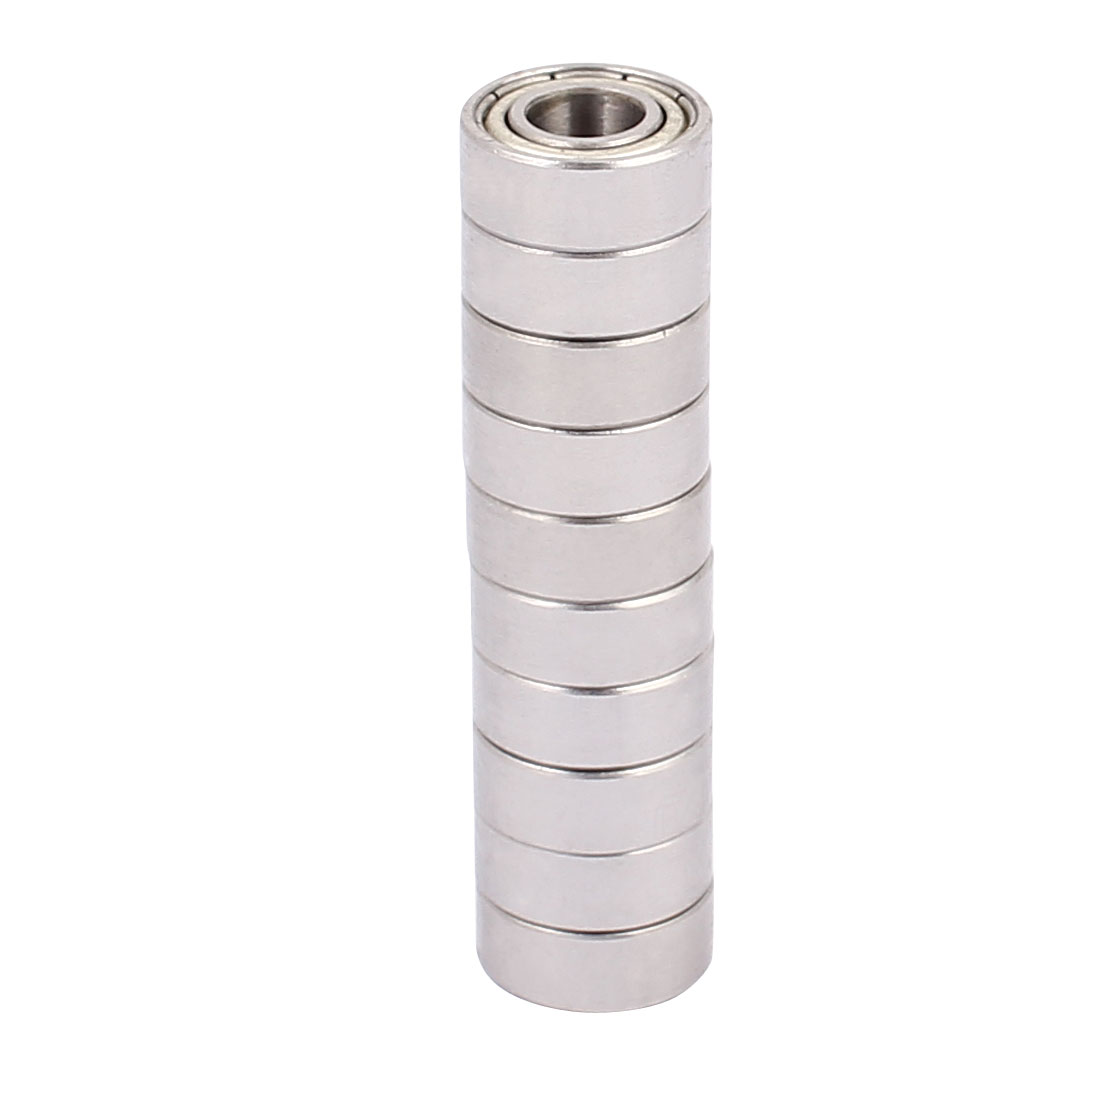 S686Z Double Shielded Deep Groove Ball Bearing Silver Tone 13mmx6mmx5mm 10pcs